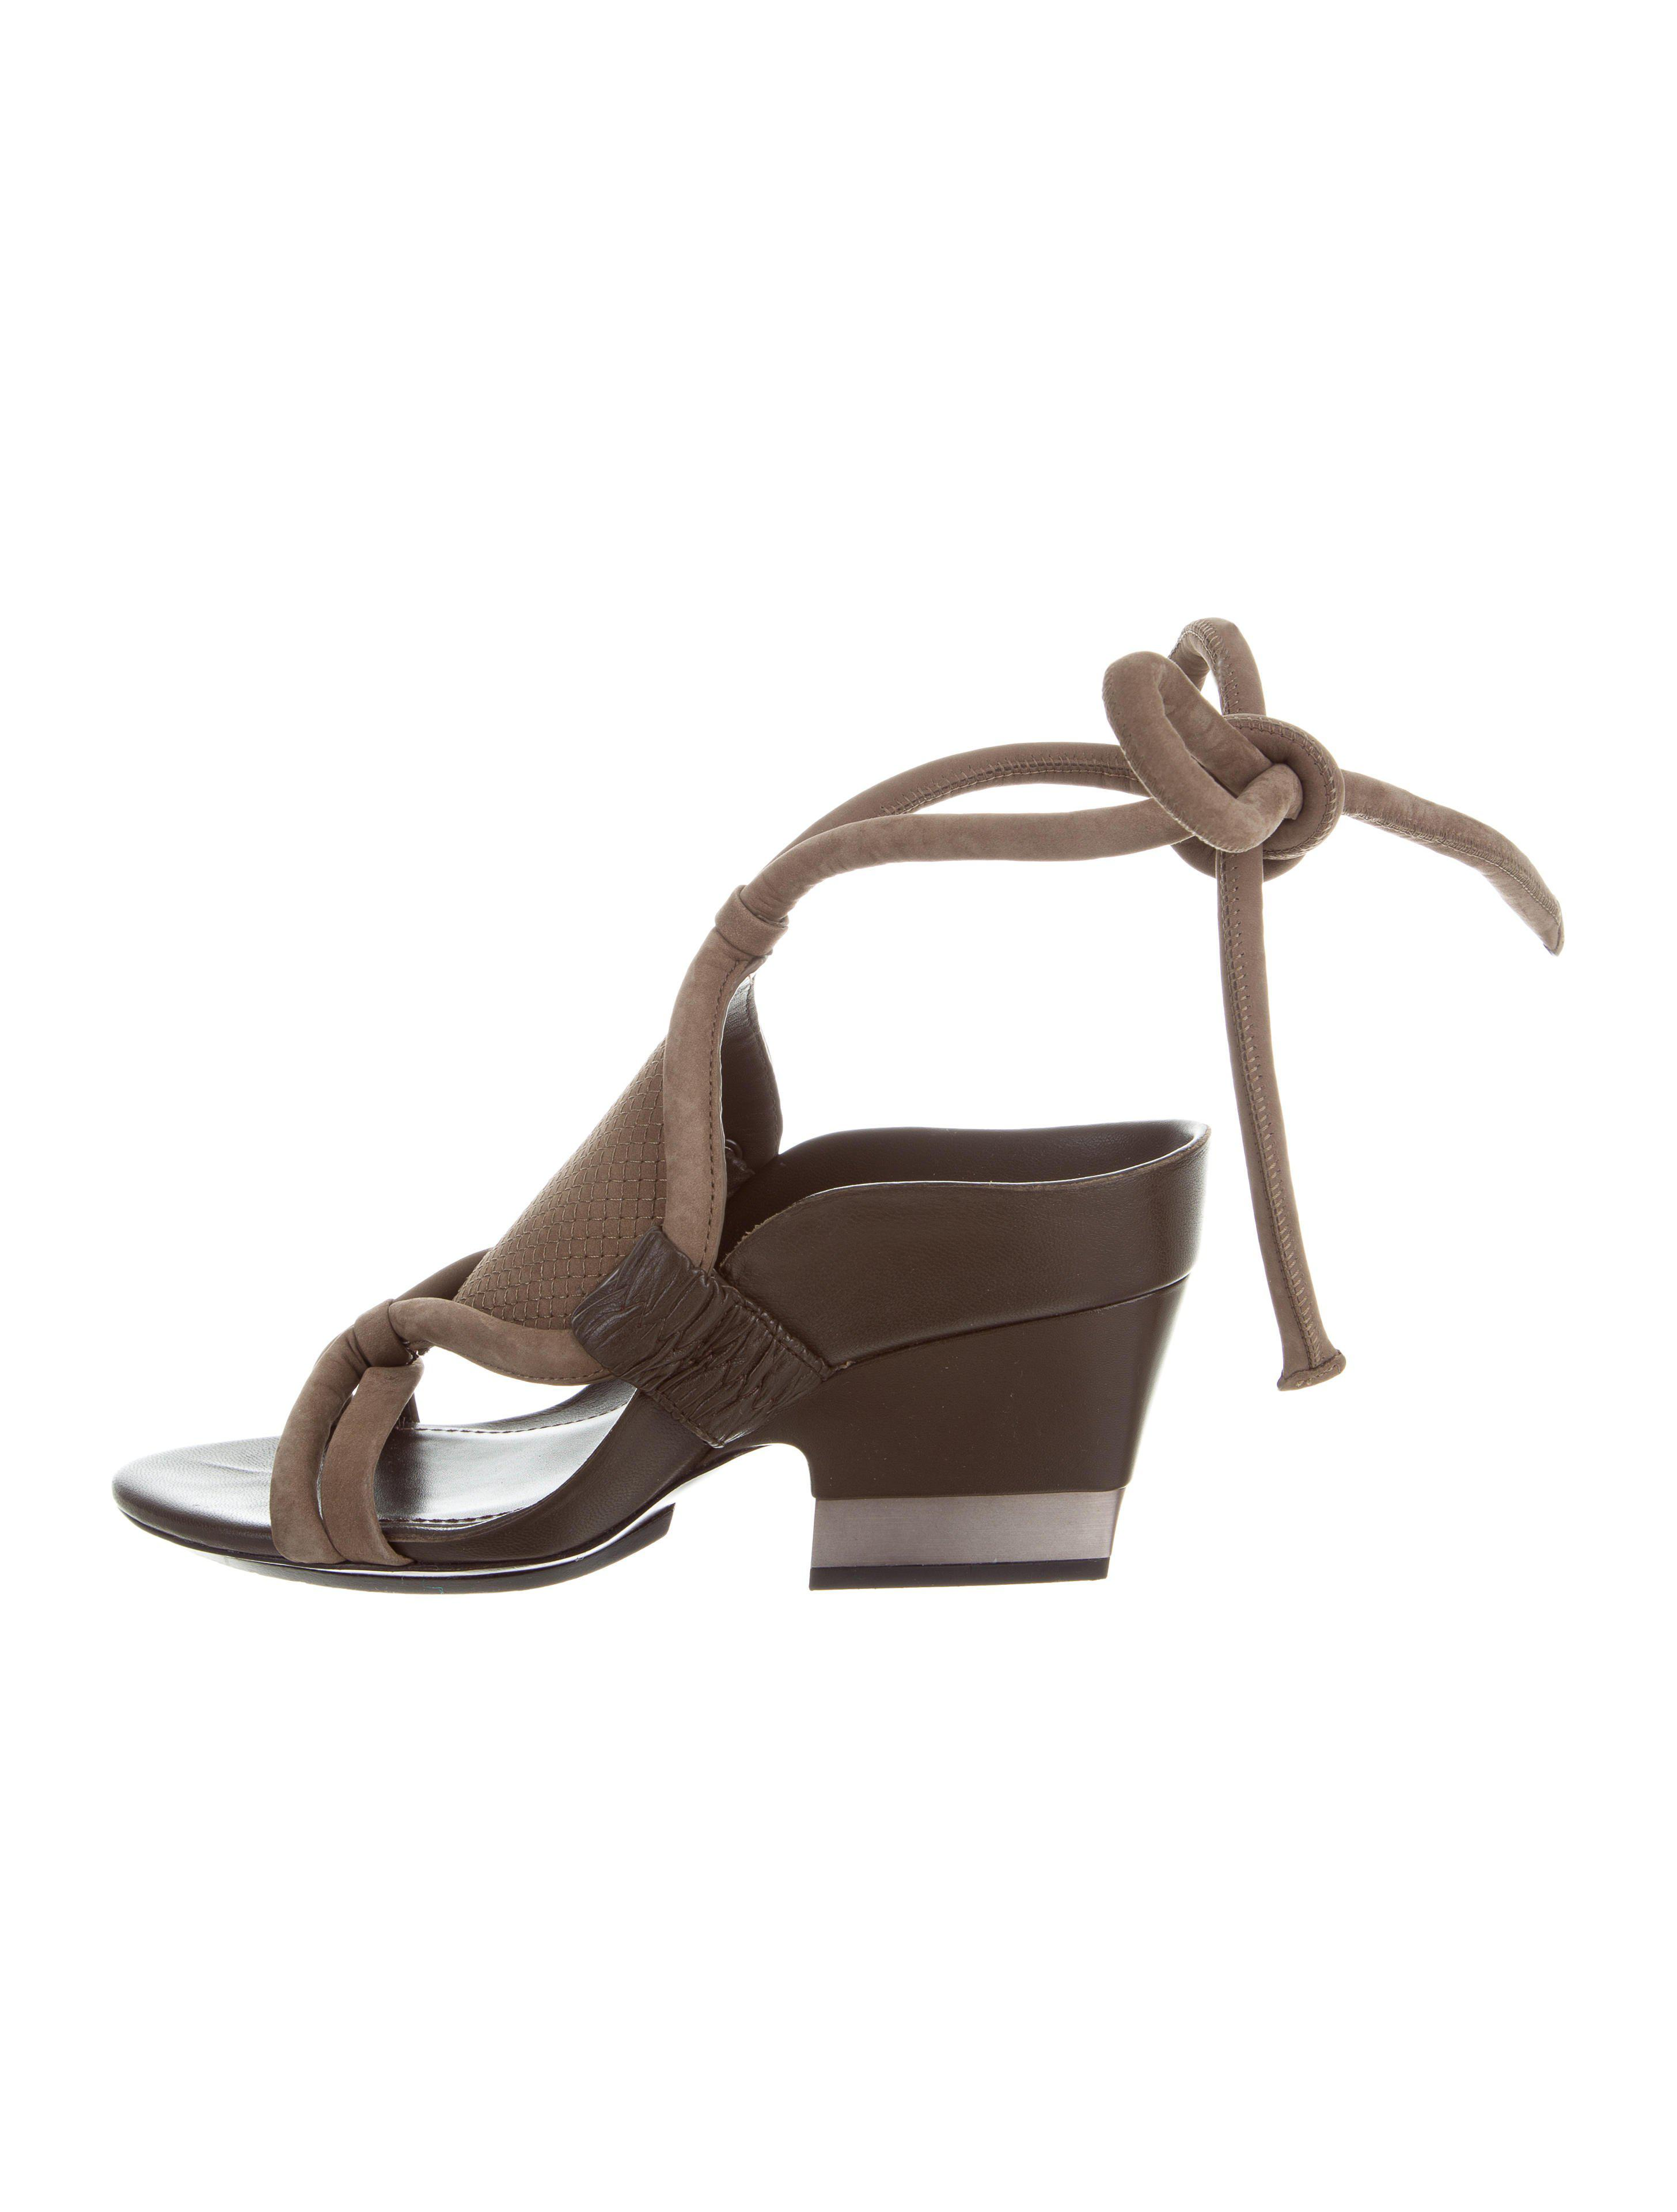 cheap sale excellent 3.1 Phillip Lim Nubuck Wrap-Around Sandals outlet clearance largest supplier cheap price for sale wholesale price igAEQwomI